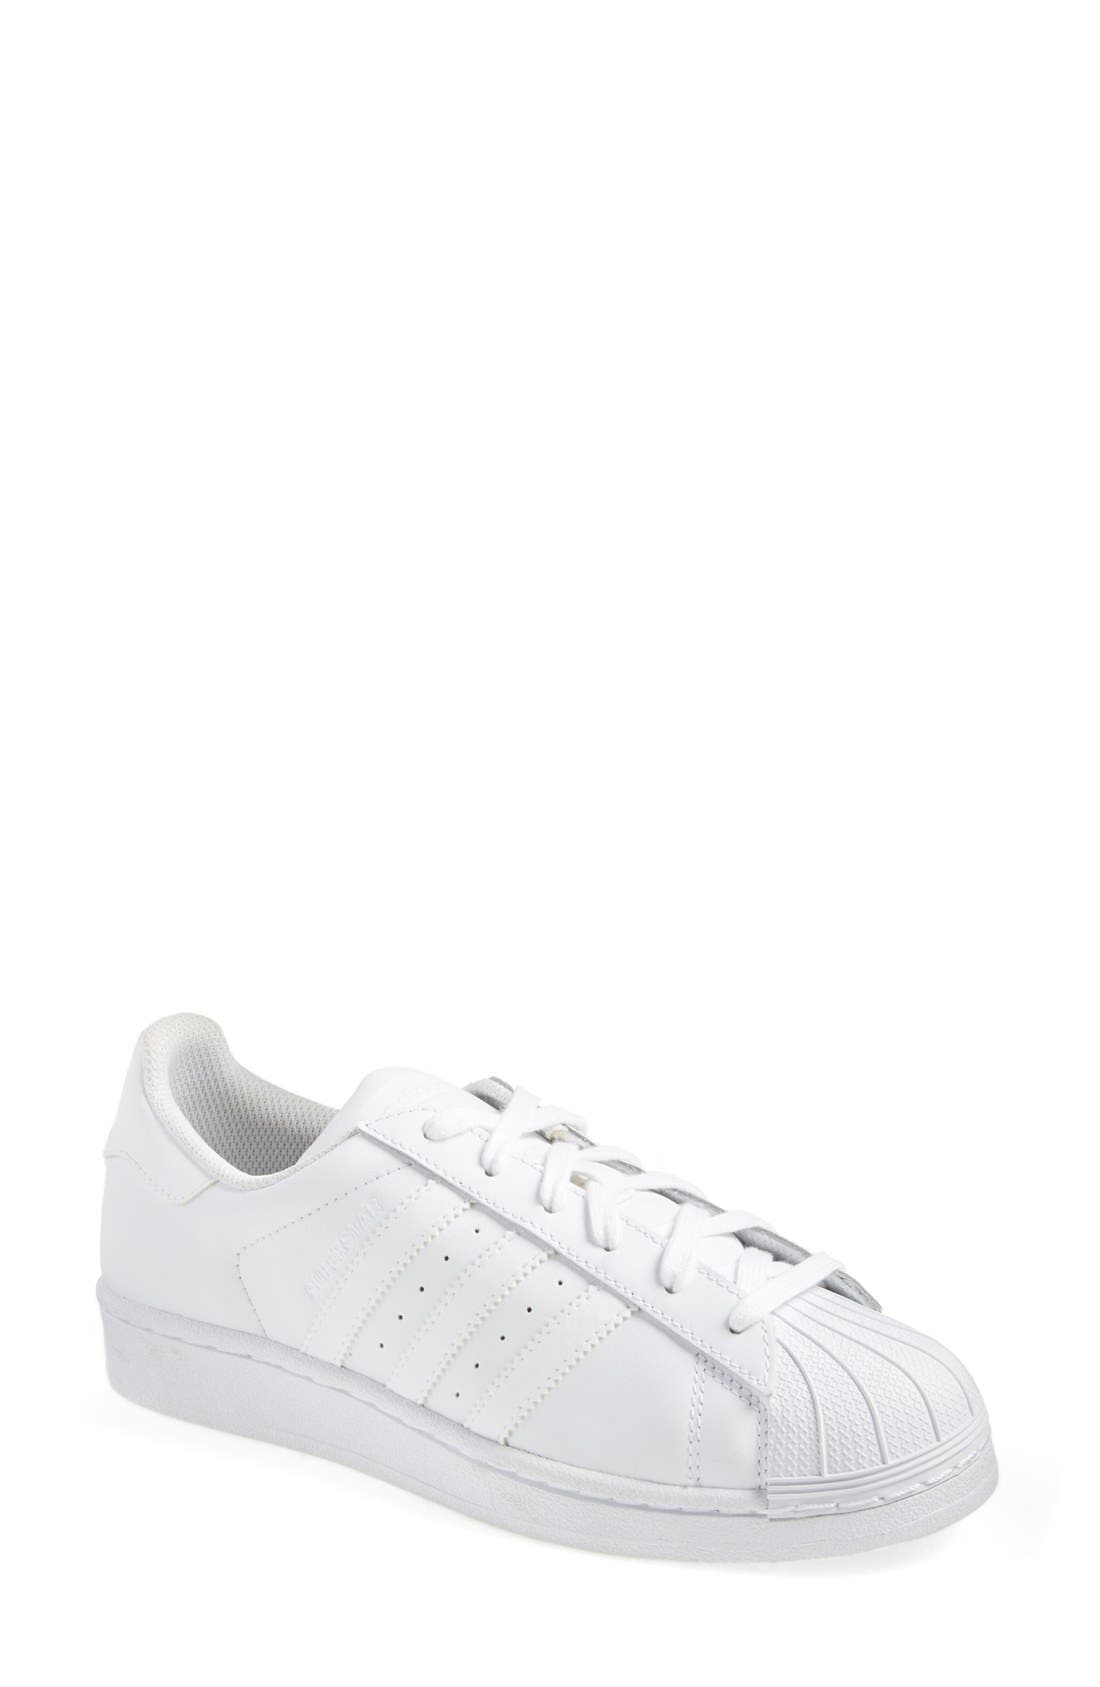 Superstar Sneaker,                         Main,                         color, White